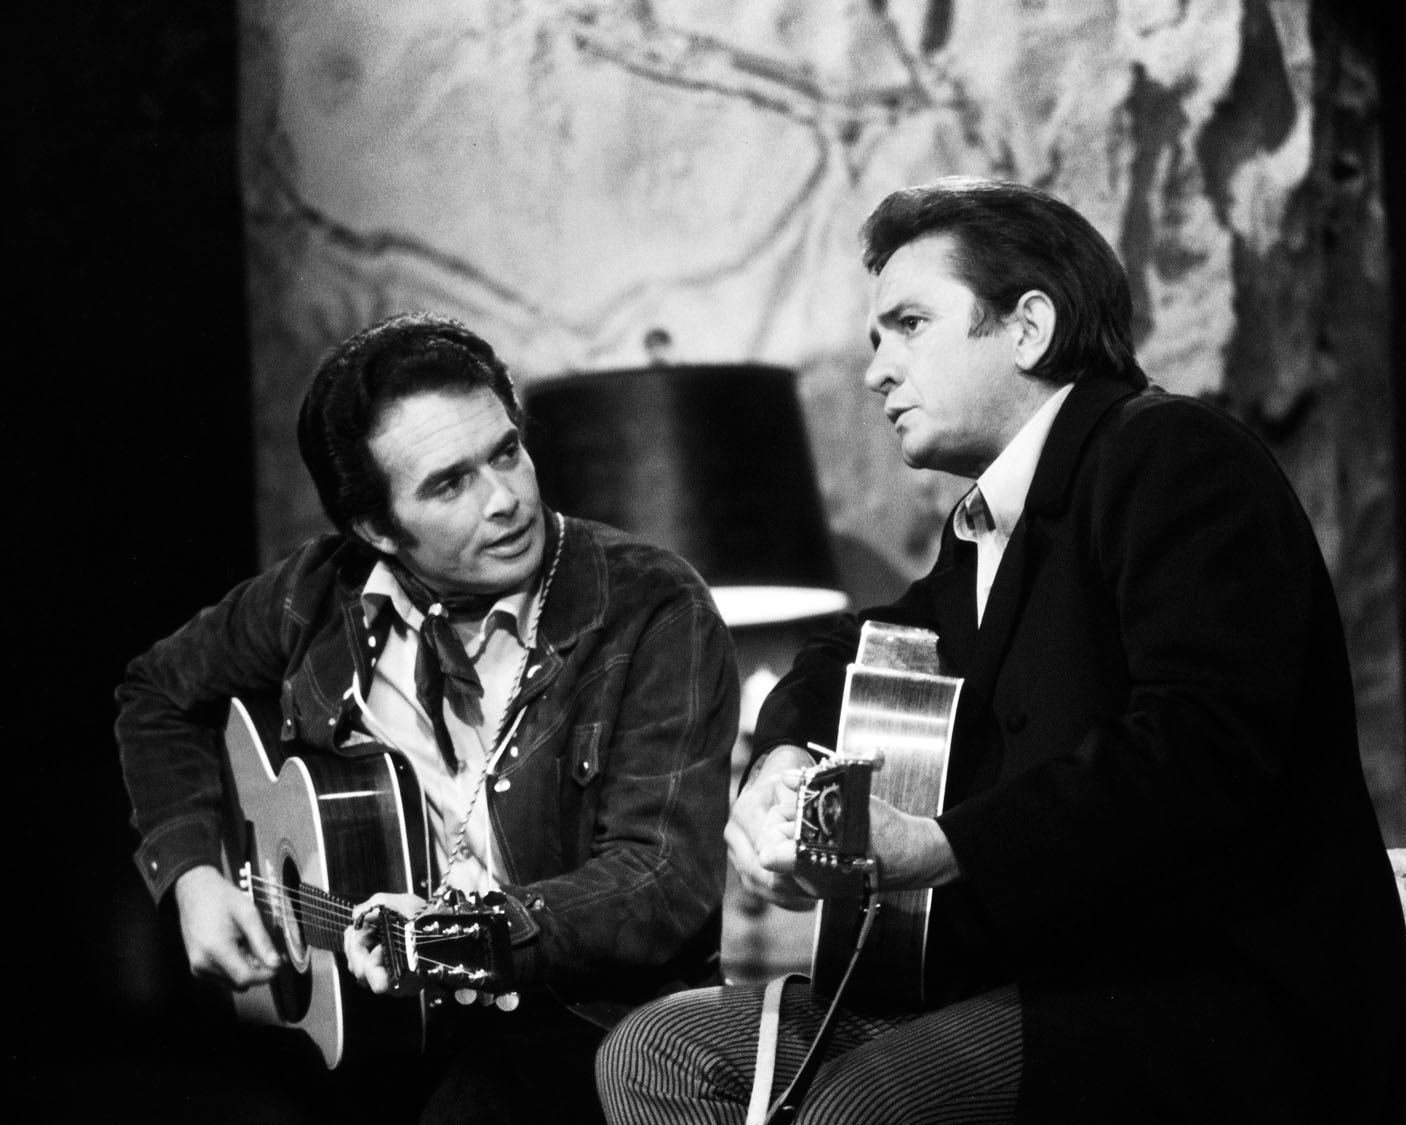 MERLE HAGGARD ON 'THE JOHNNY CASH SHOW' IN 1969 - 8X10 PUBLICITY PHOTO (AZ-038)